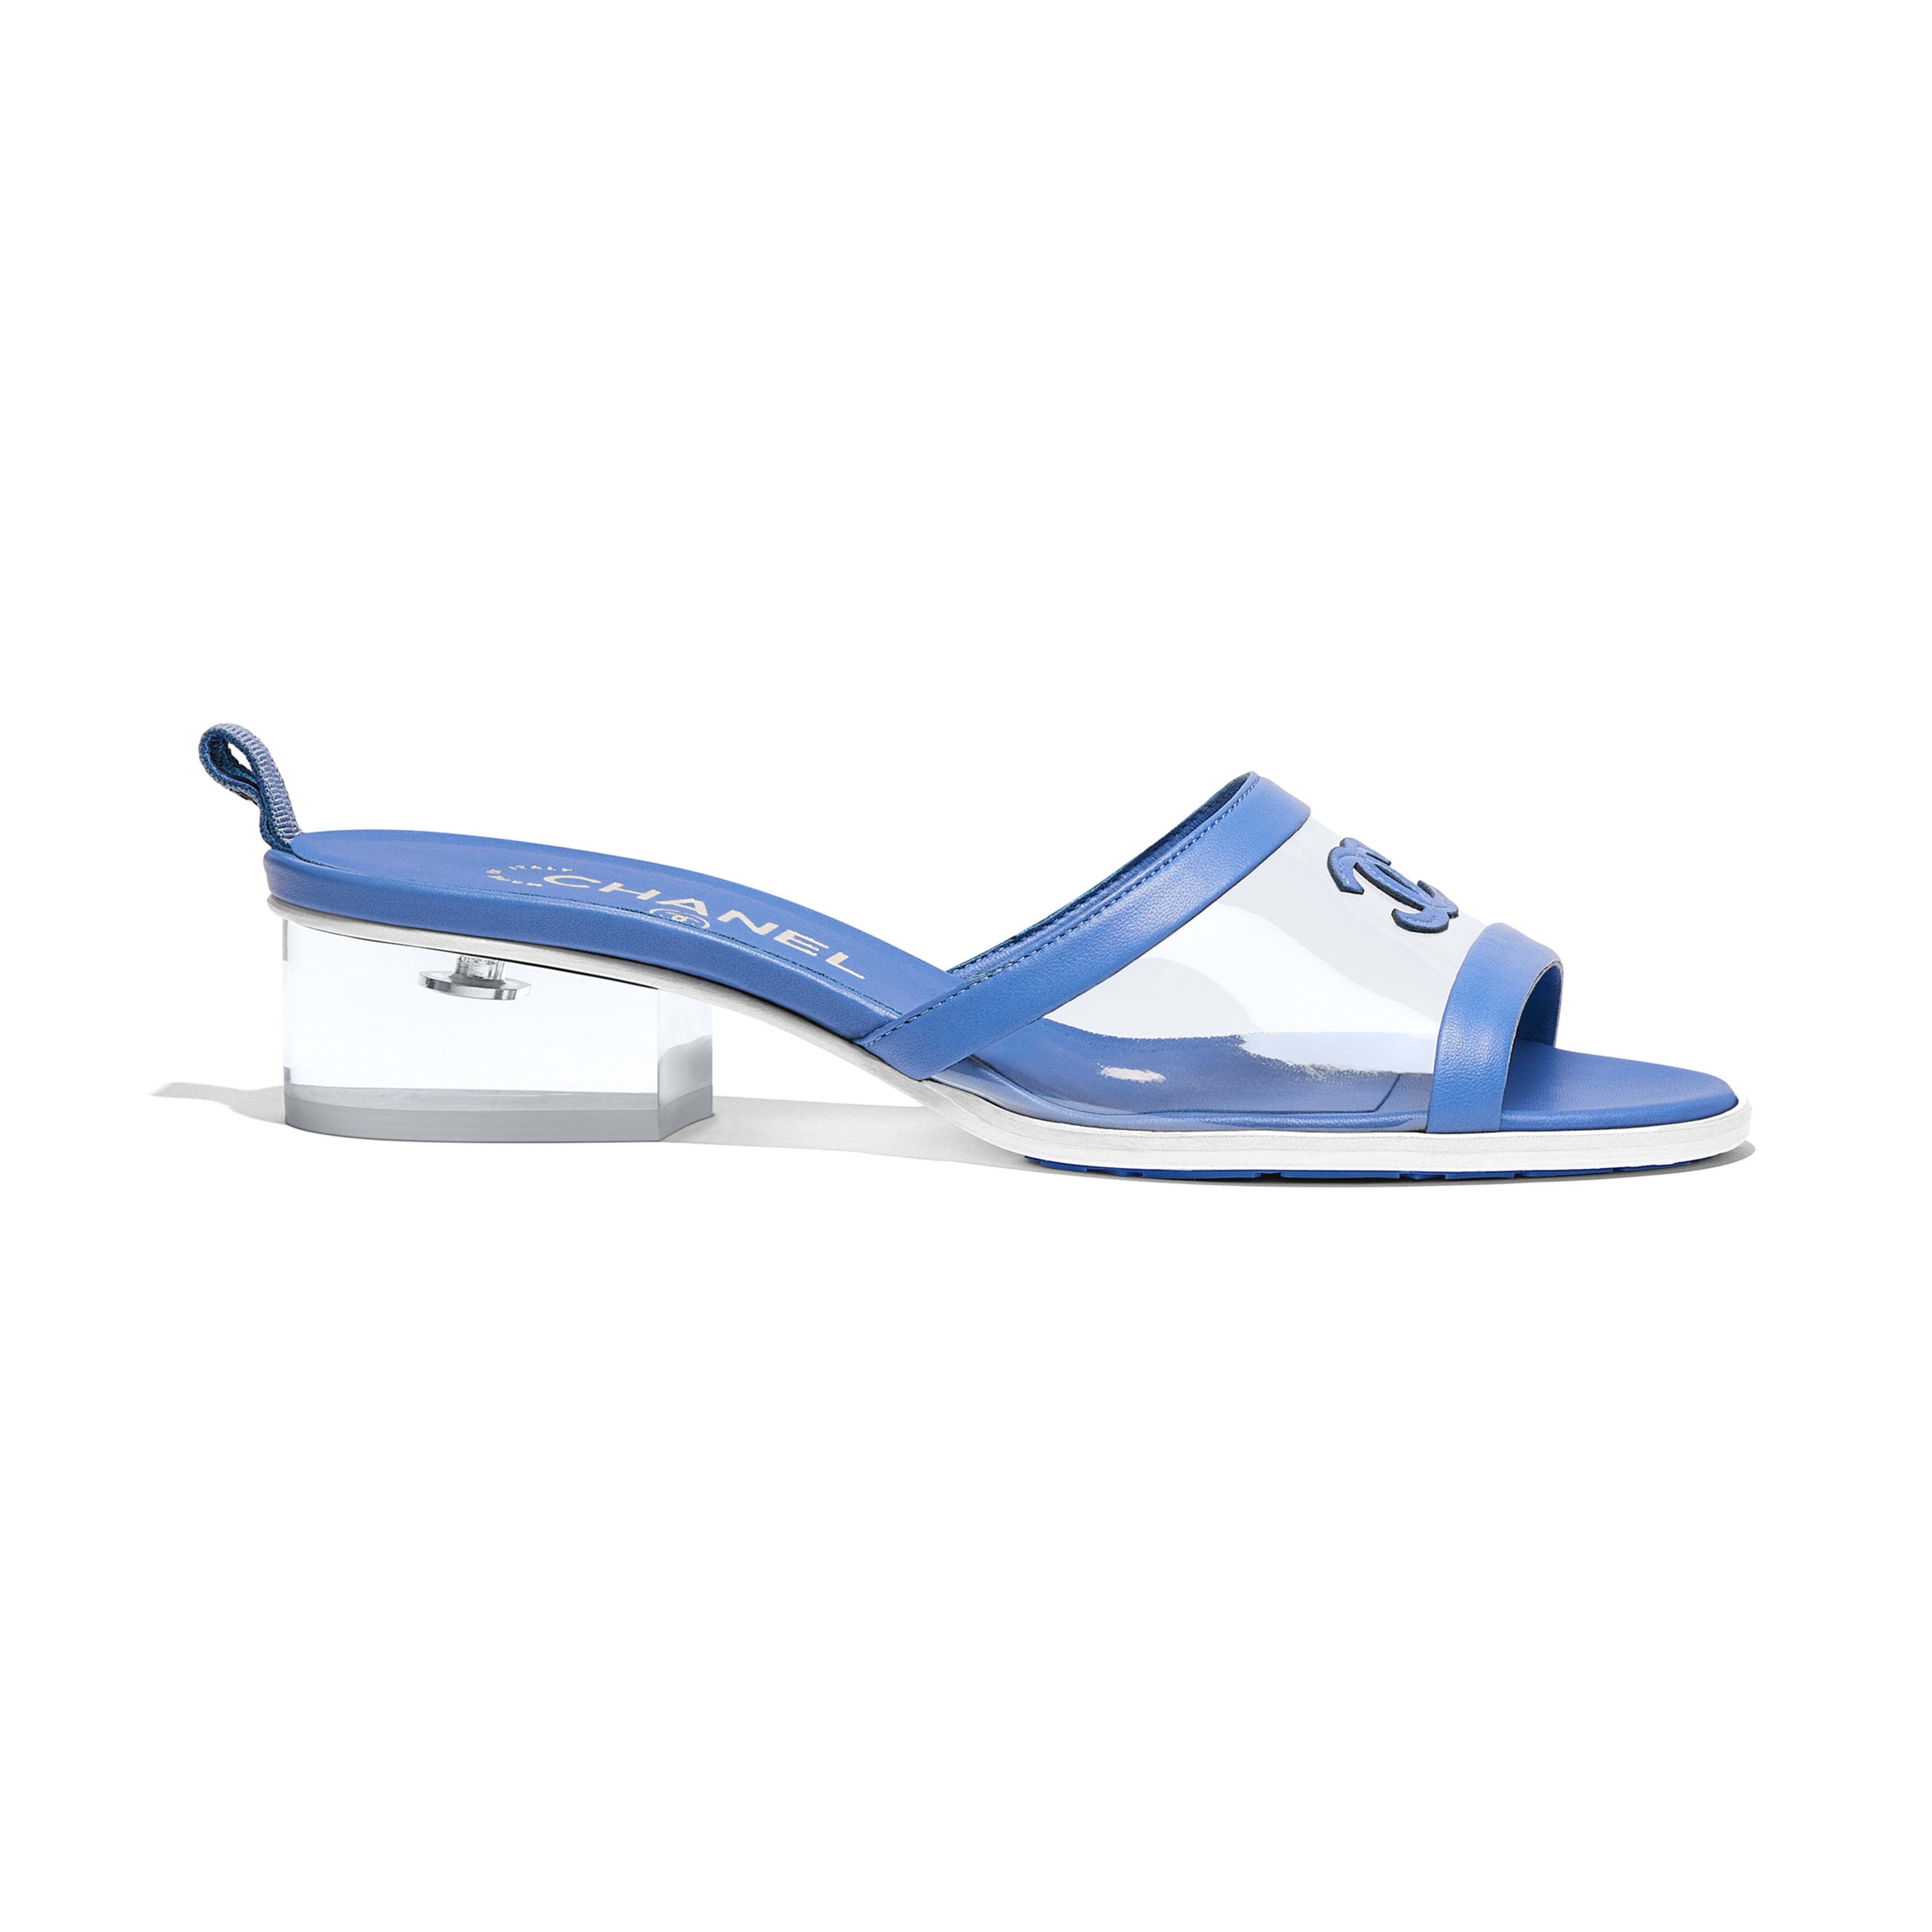 Mules - Transparent & Blue - PVC & Lambskin - Default view - see full sized version